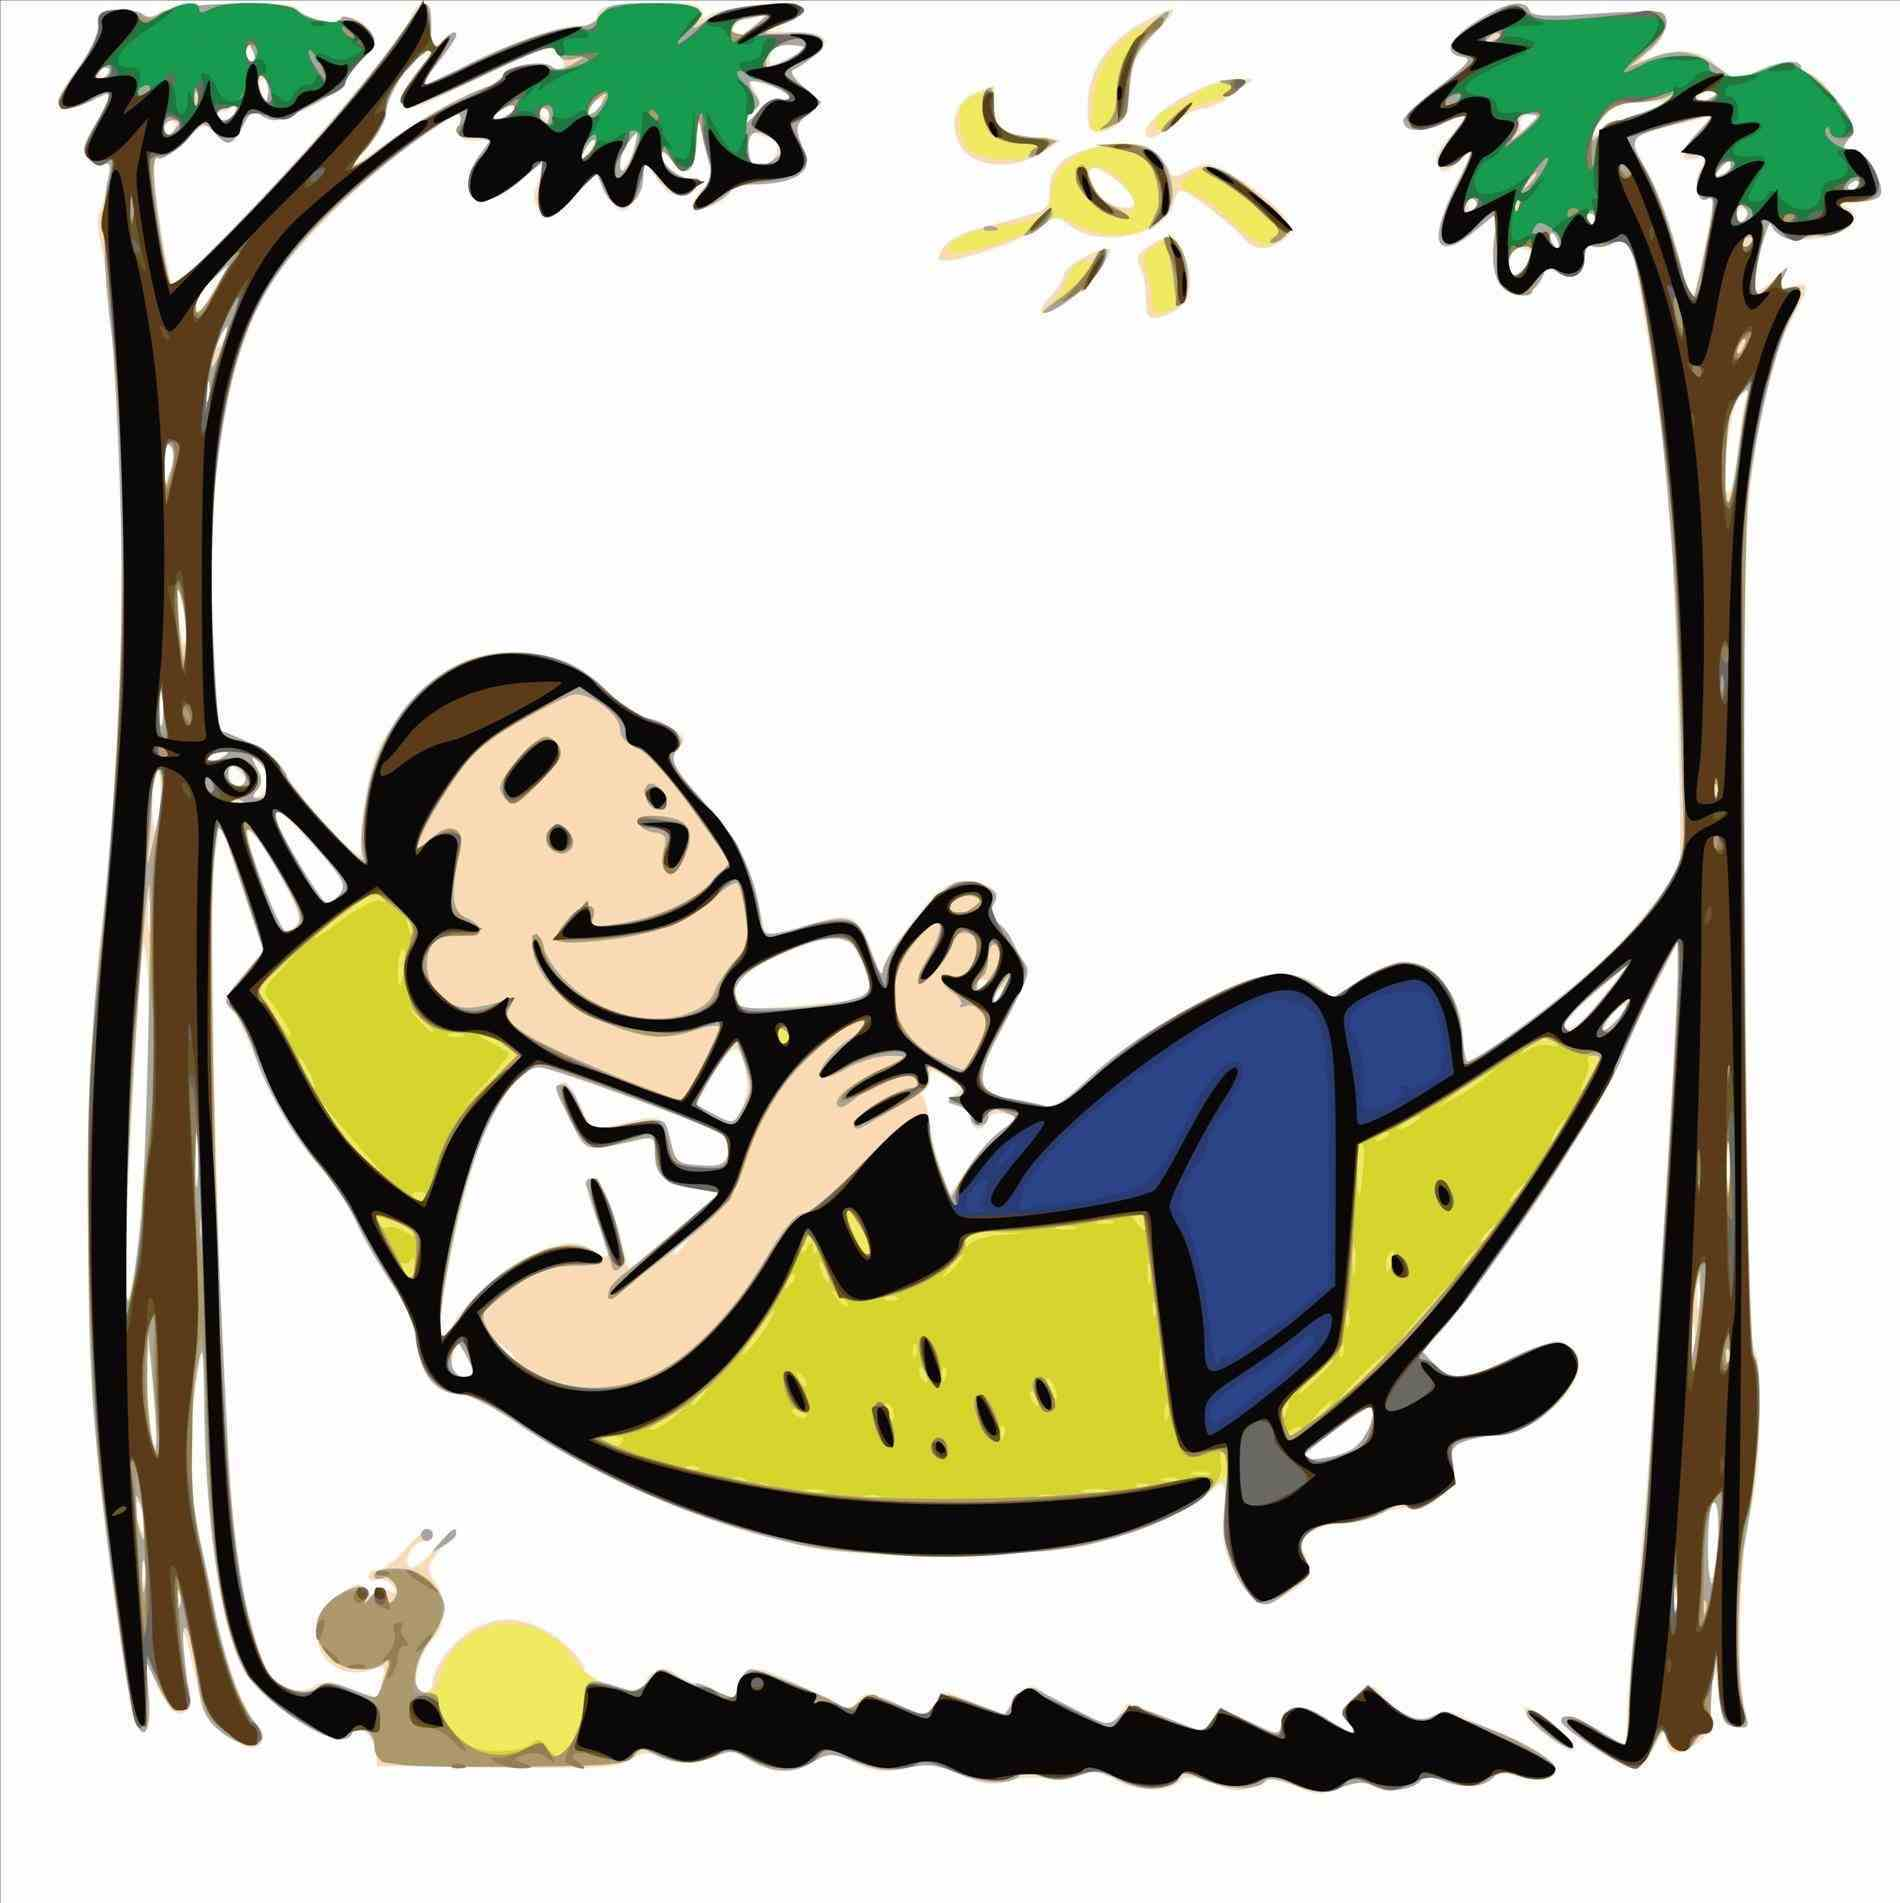 Relax clipart. Clip art free of